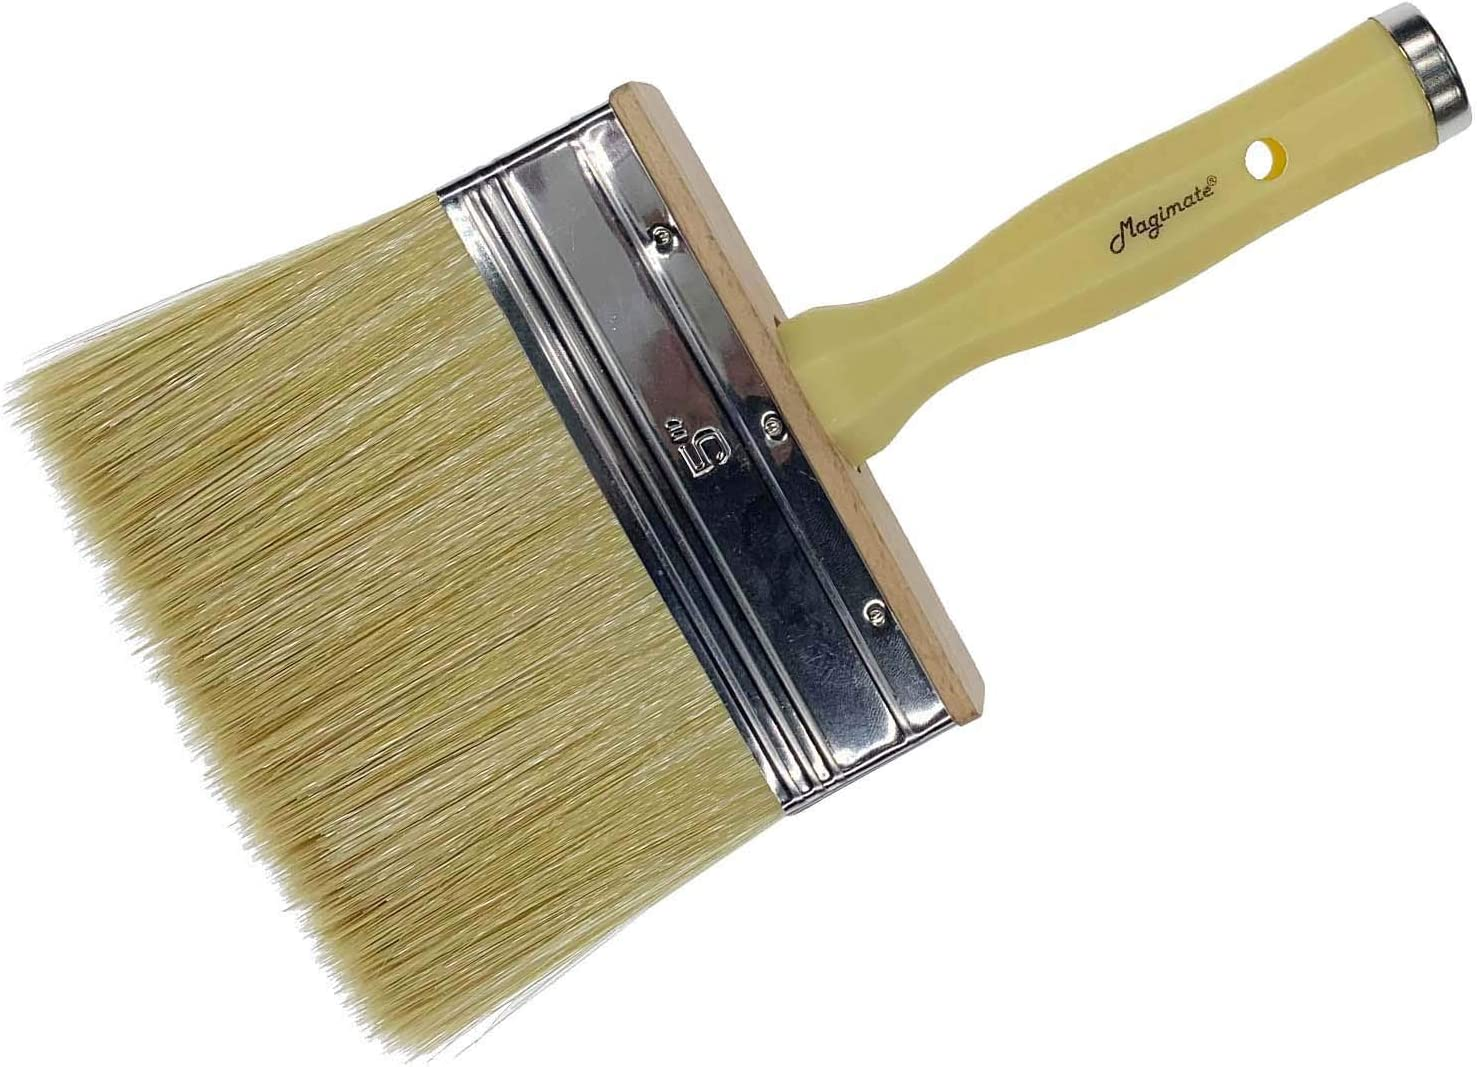 Magimate Deck Brush for Applying Stain, 5-inch Paint Brush, Medium Size for Quick Decking, Fence, Walls and Furniture Paint Application, Handle Threaded for Extension Use